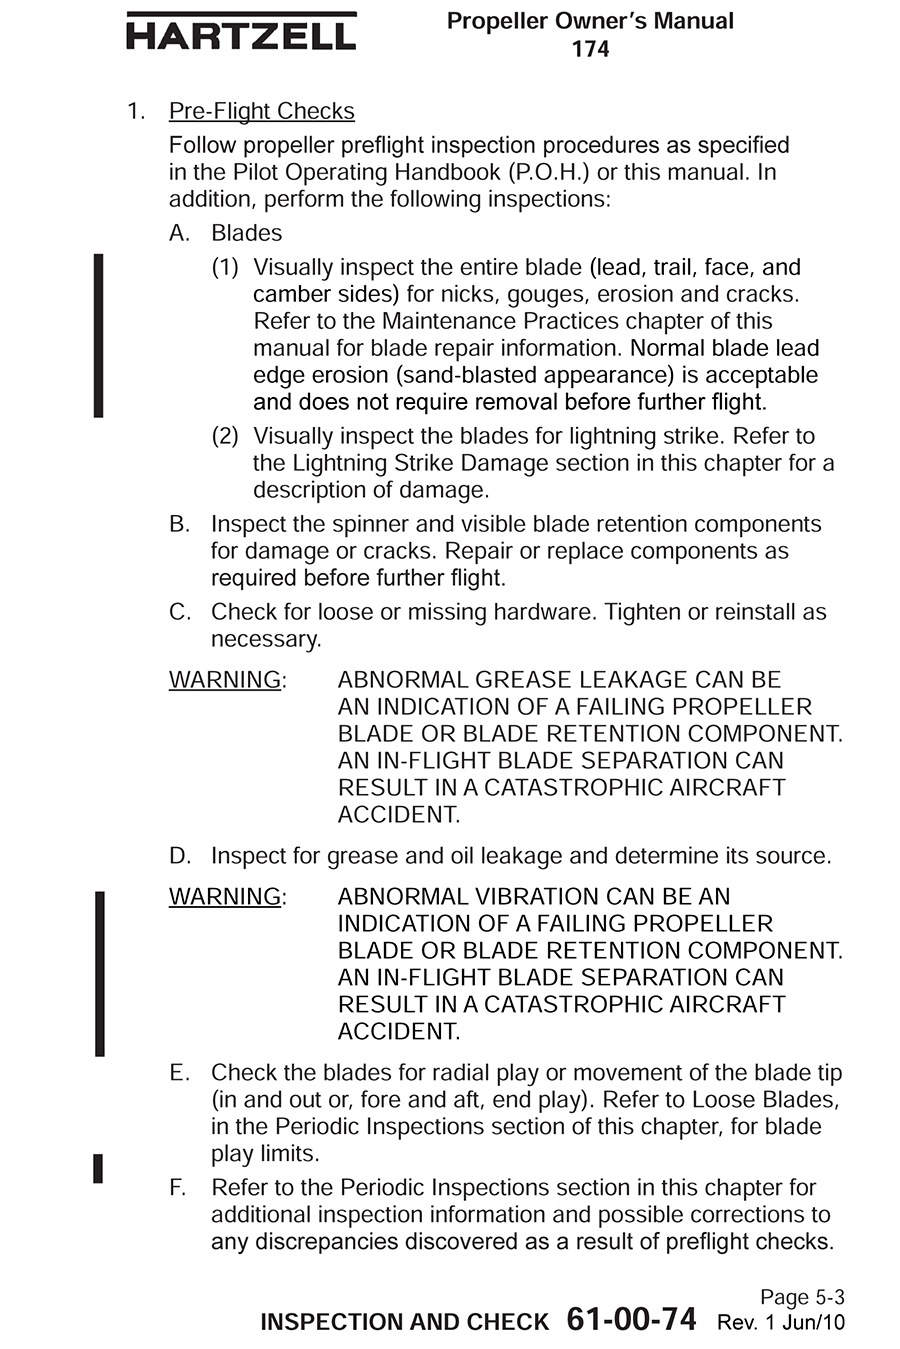 Hartzell Prop Manual 2010 page107